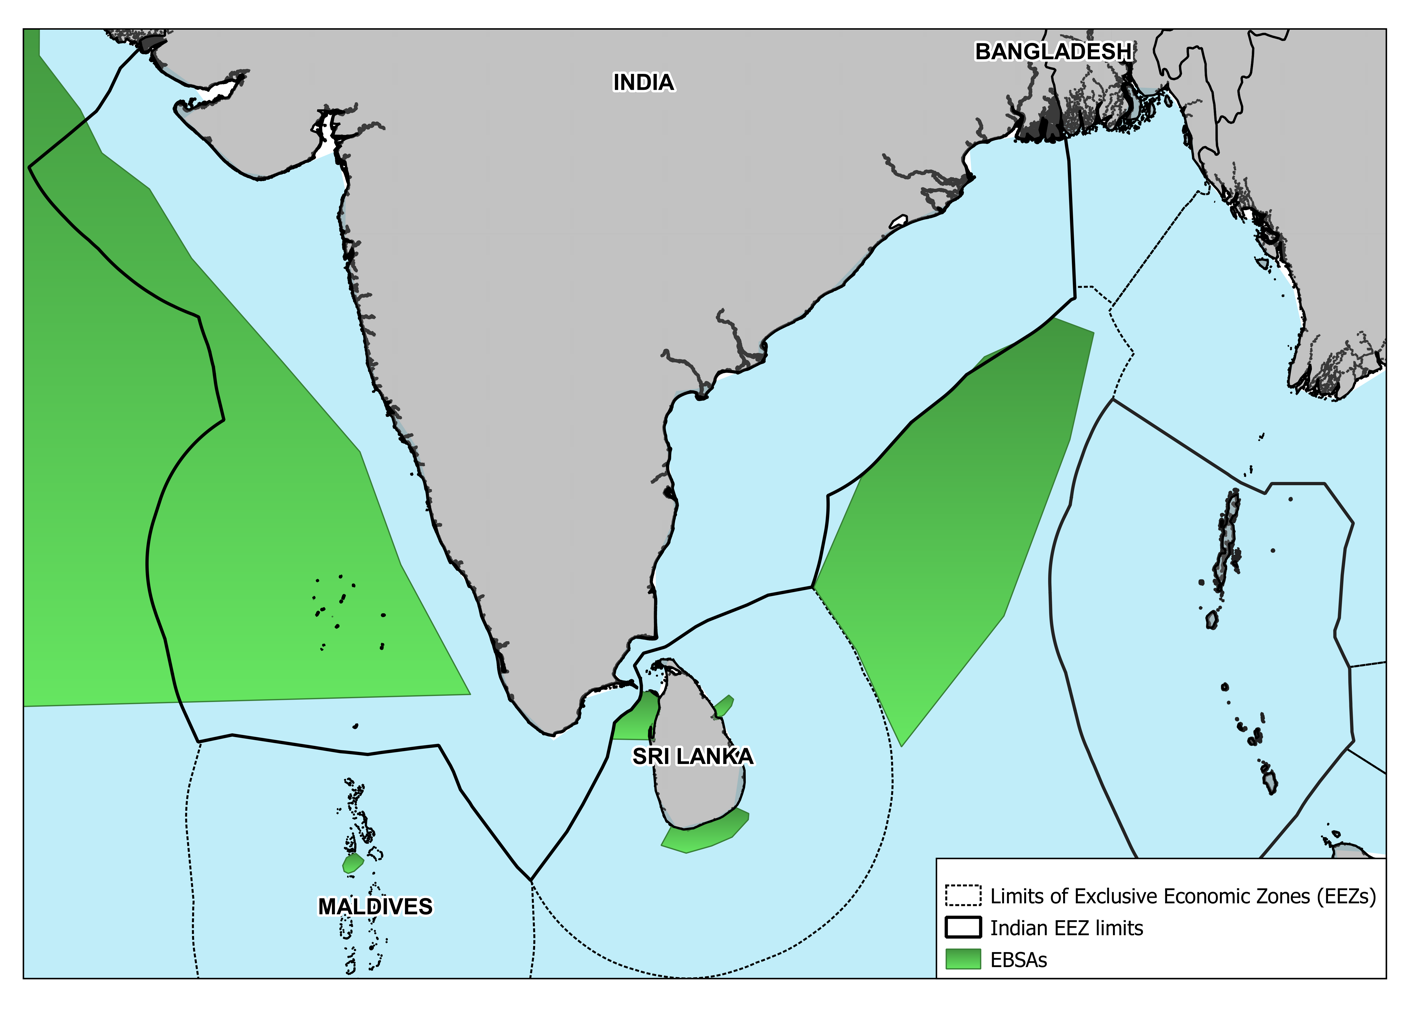 """Figure 1: Ecologically or Biologically Significant Areas (EBSAs) in/ around India's EEZ. Image created by author, Mr Eklavya Tiwary. Data Source: """"Ecologically or Biologically Significant Marine Areas,"""" Convention on Biological Diversity, https://www.cbd.int/ebsa/ebsas and """"Marine Gazetteer Placedetails,"""" Marineregions.org, https://marineregions.org/gazetteer.php?p=details&id=8480."""